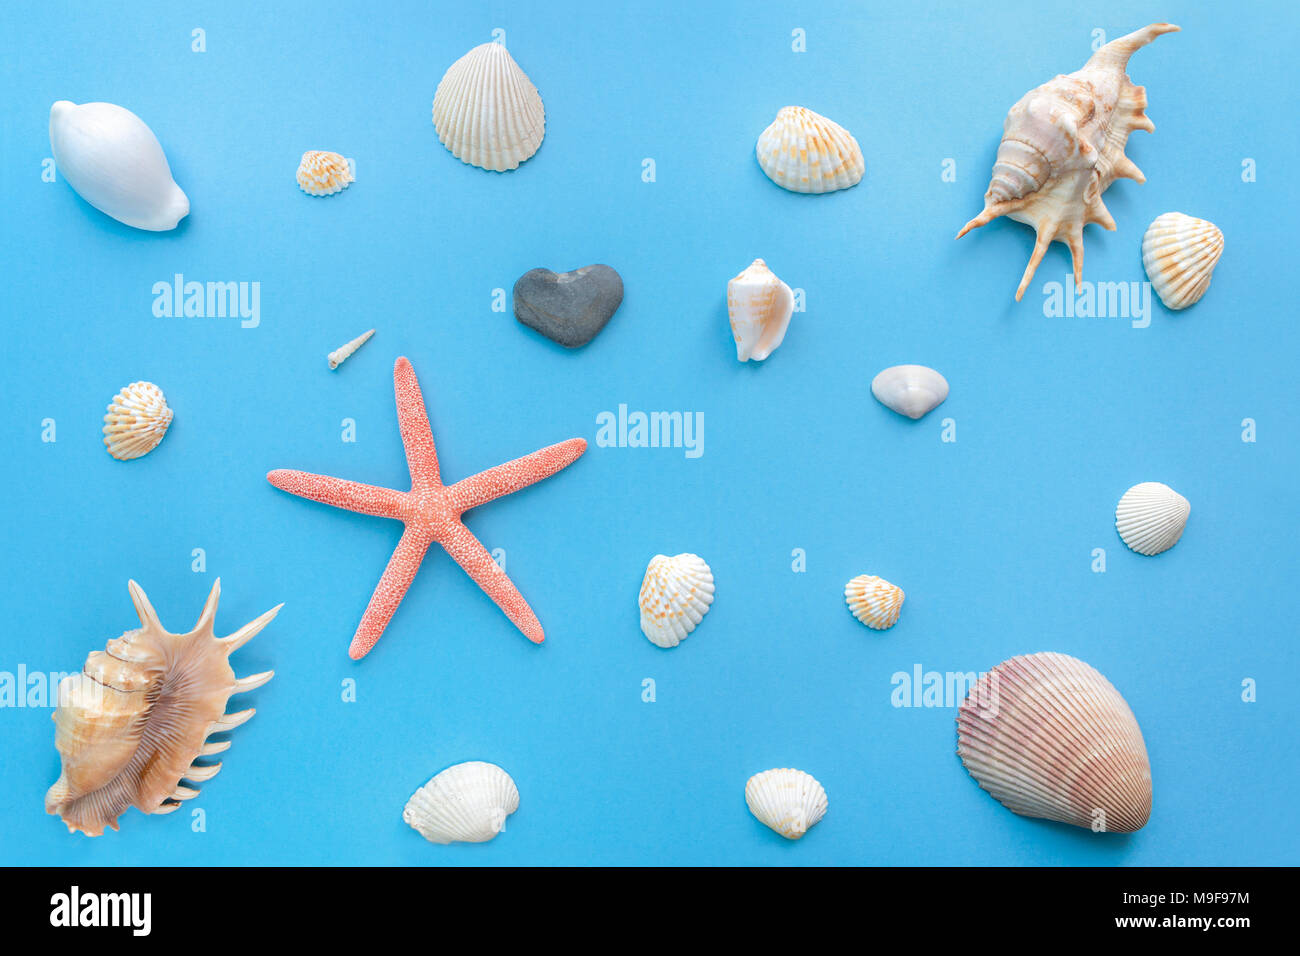 Flat lay set of sea shells of different sizes on a bright pastel blue background. - Stock Image